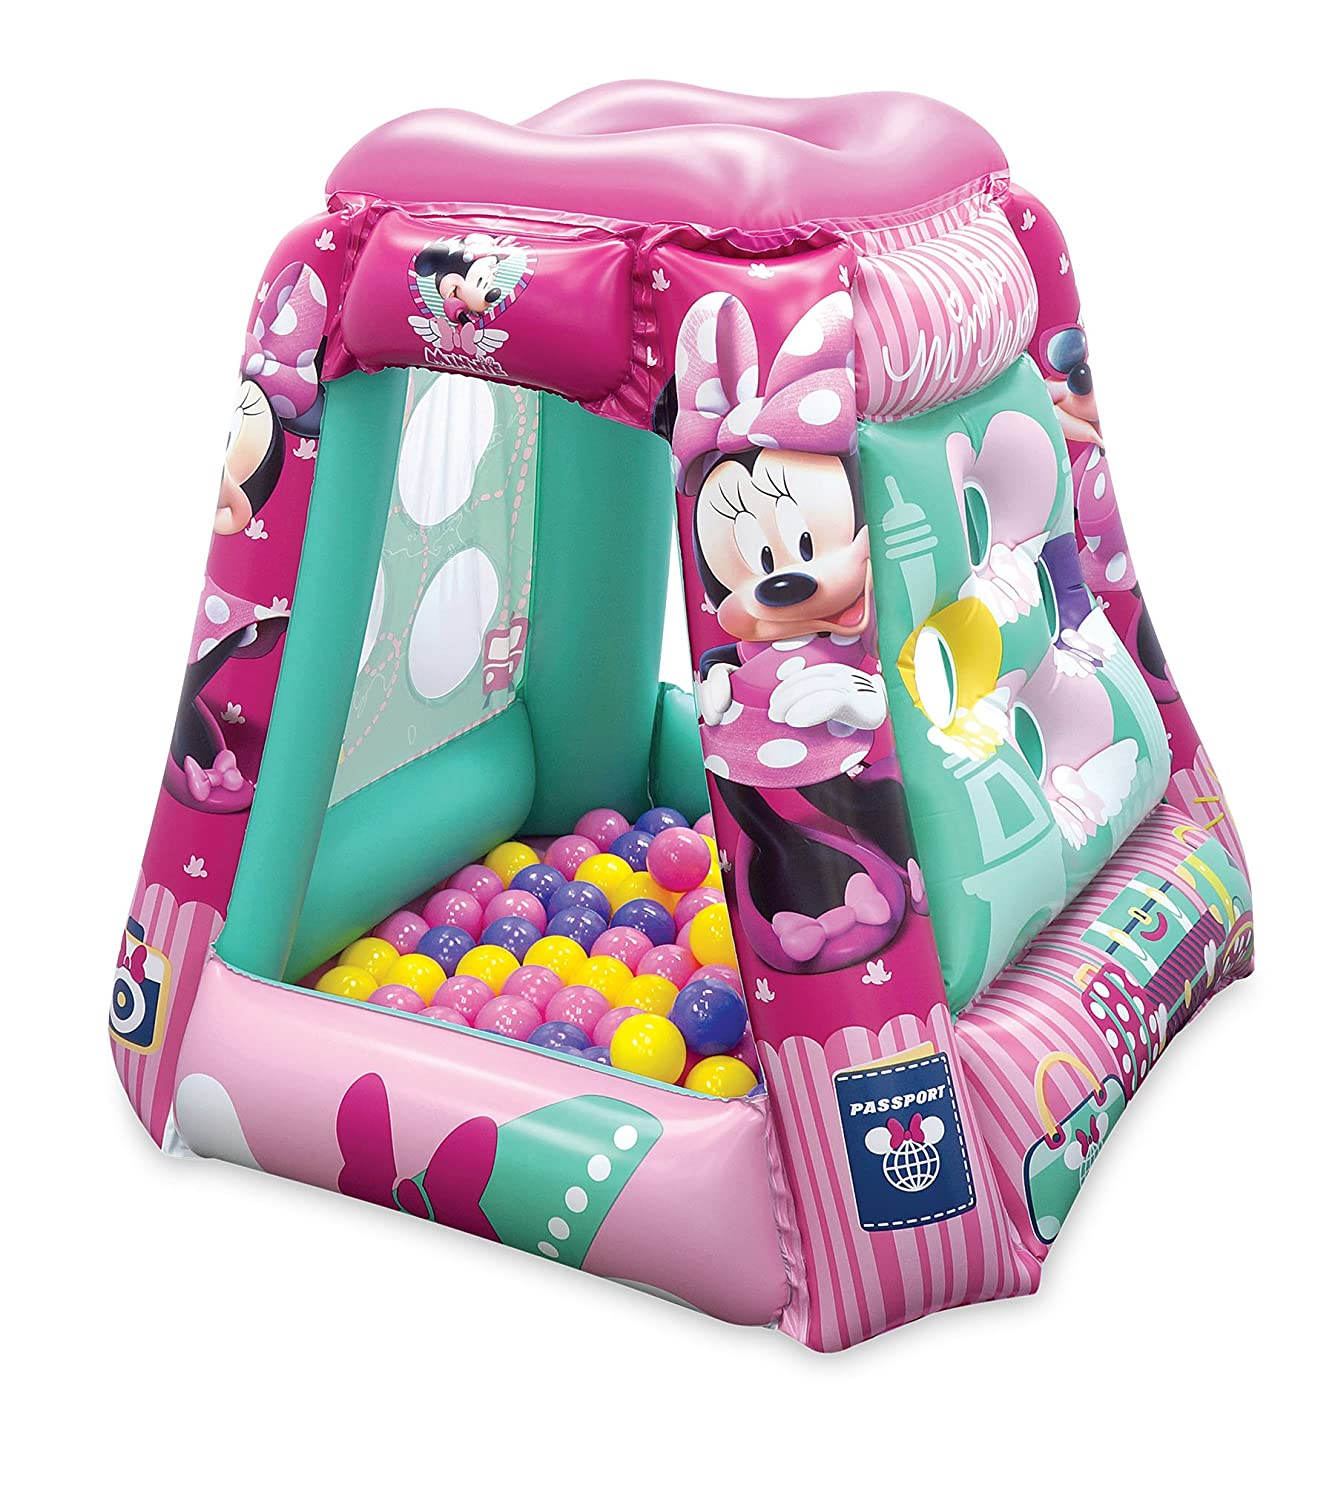 Amazon.com: Minnie Mouse Jet Setter Ball Pit, 1 Inflatable & 20 Sof ...